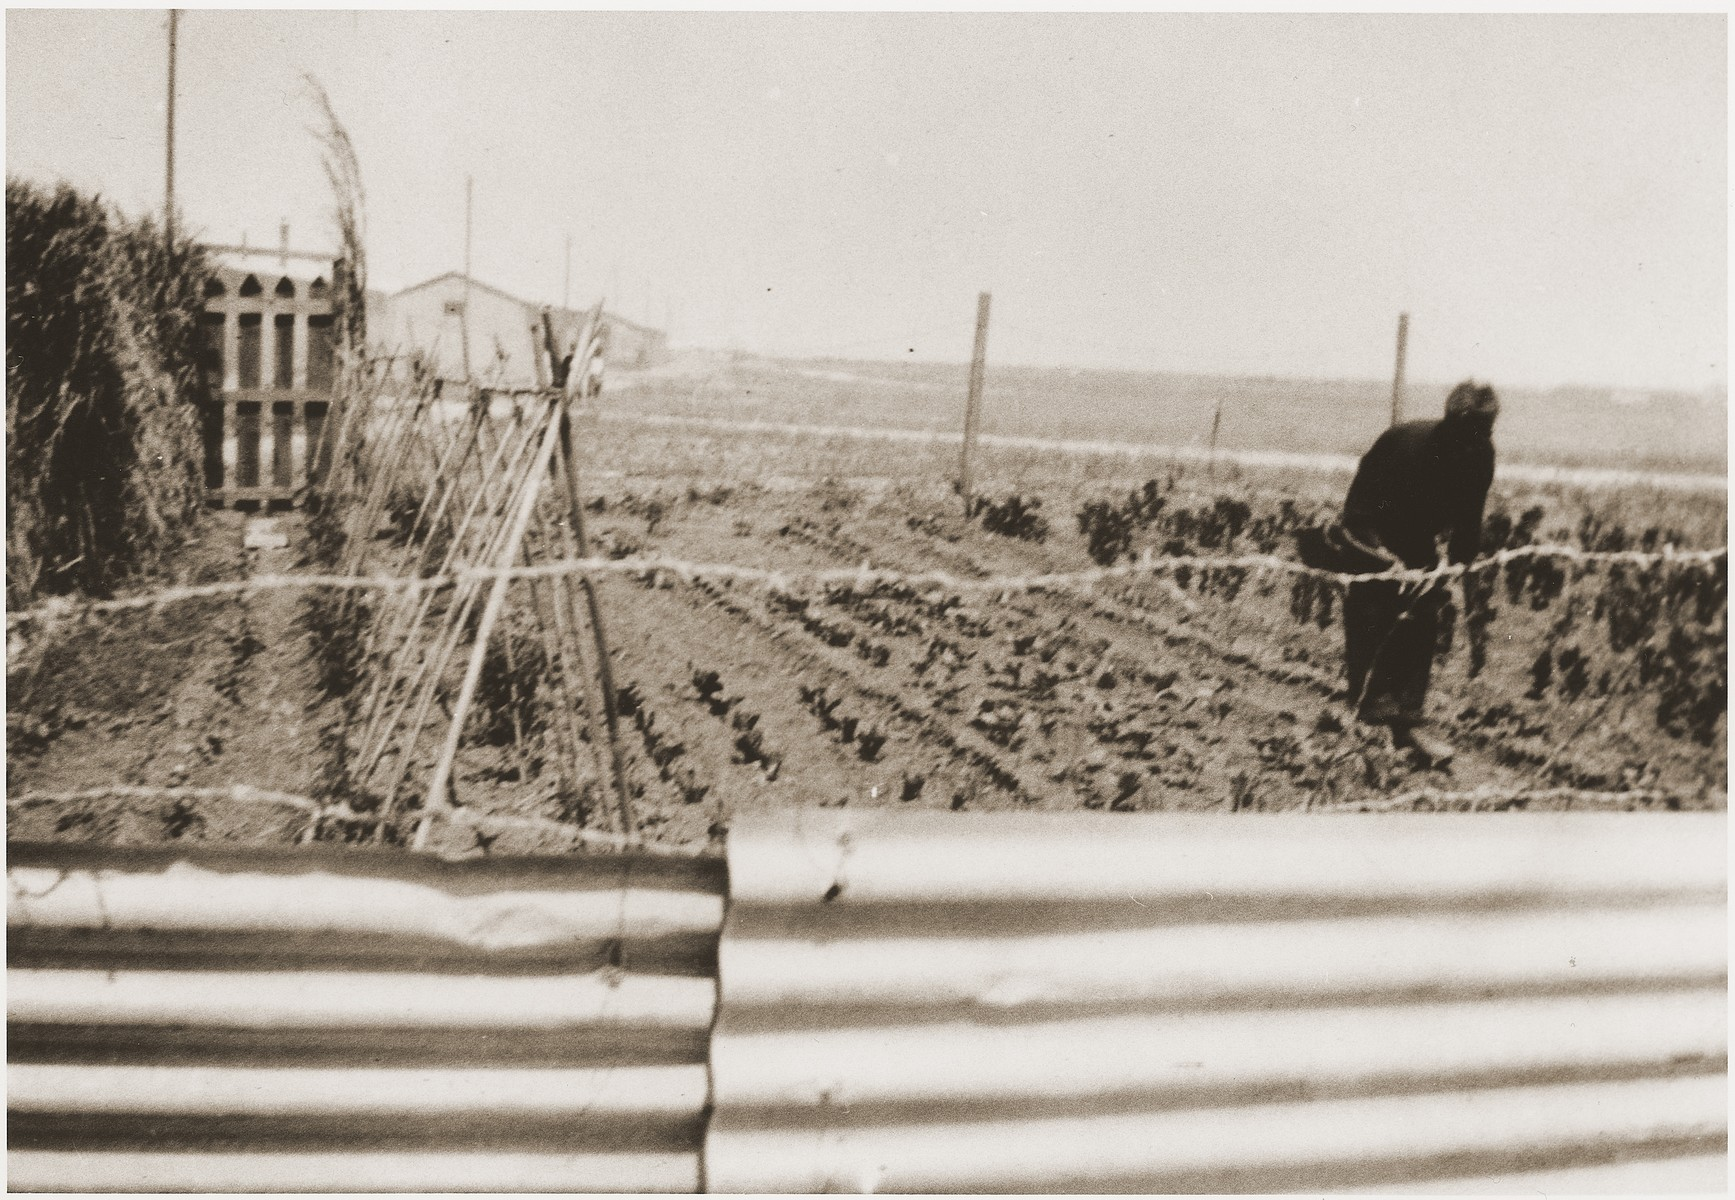 Garden belonging to Secours Suisse aux enfants in the Rivesaltes internment camp.